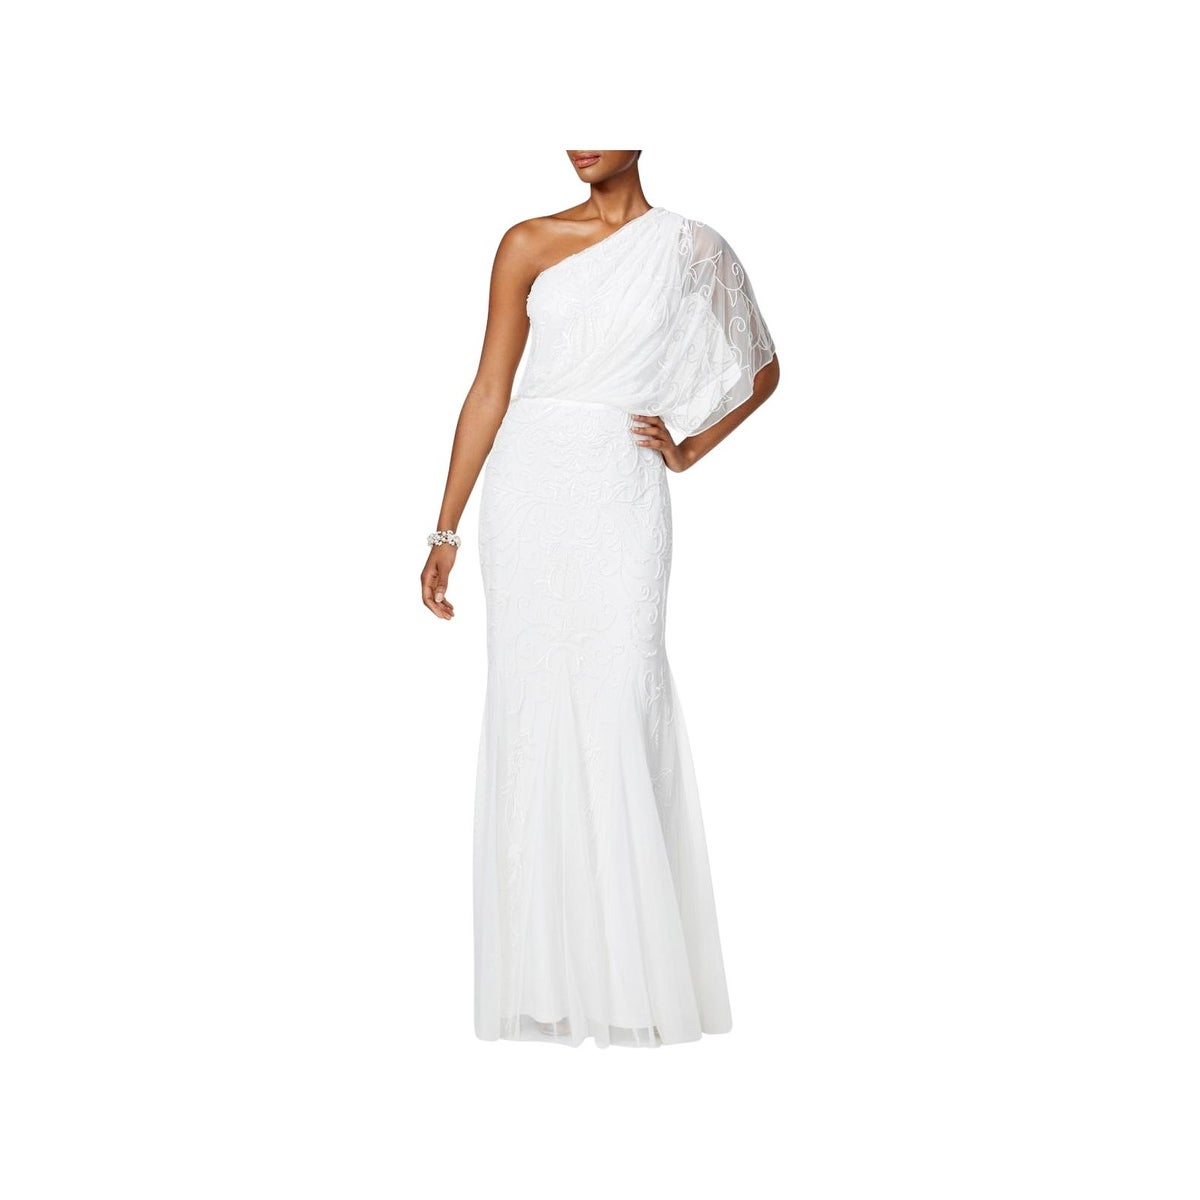 Shop Adrianna Papell Womens Evening Dress One Shoulder Full-Length ...